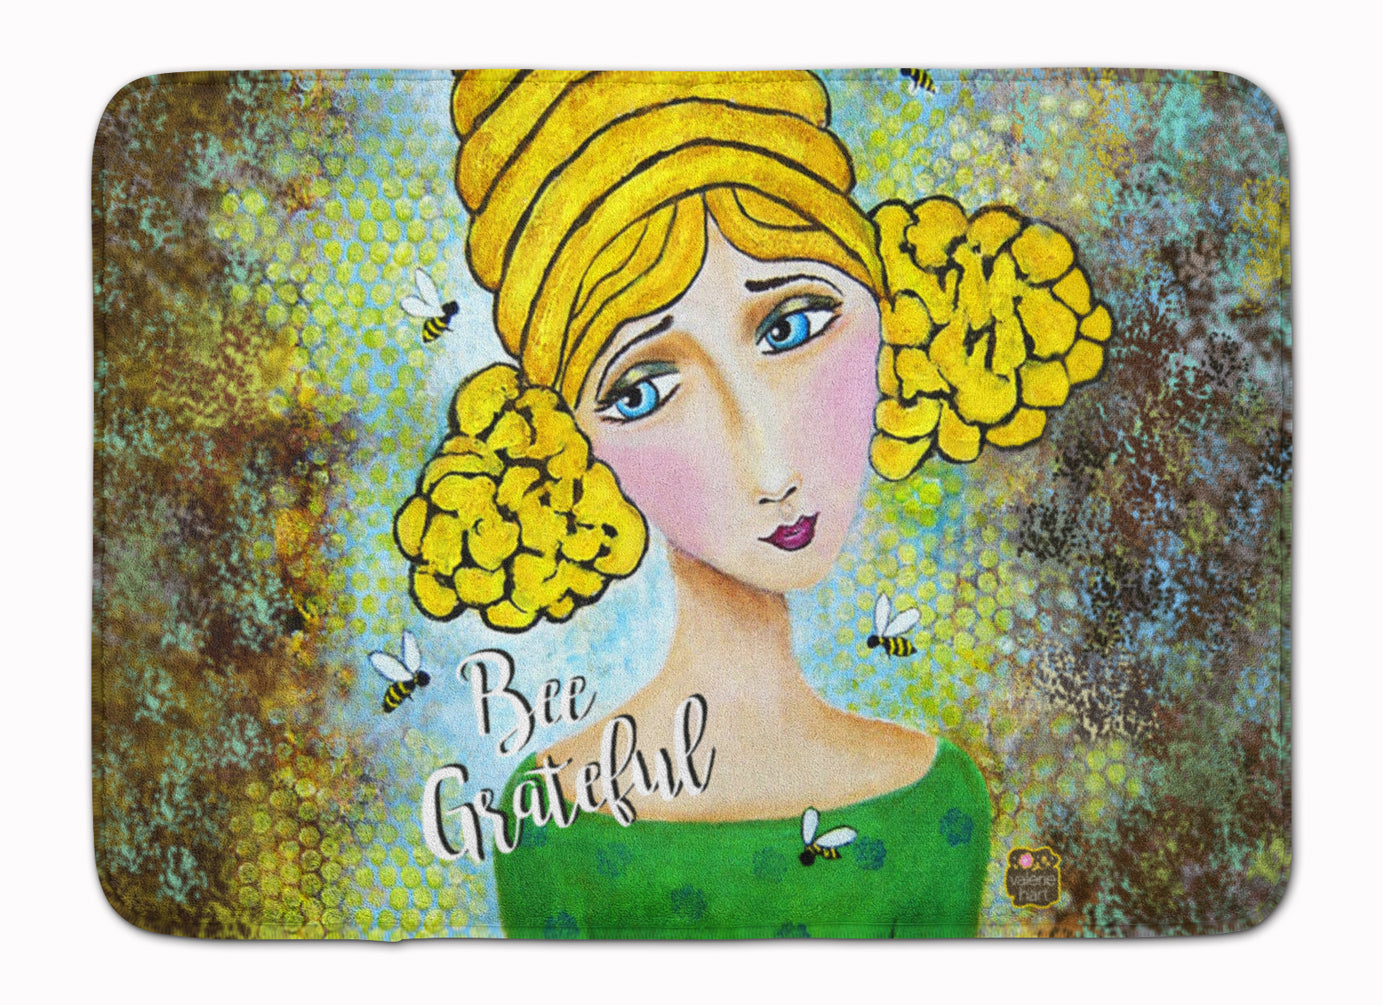 Bee Grateful Girl with Beehive Machine Washable Memory Foam Mat VHA3008RUG by Caroline's Treasures